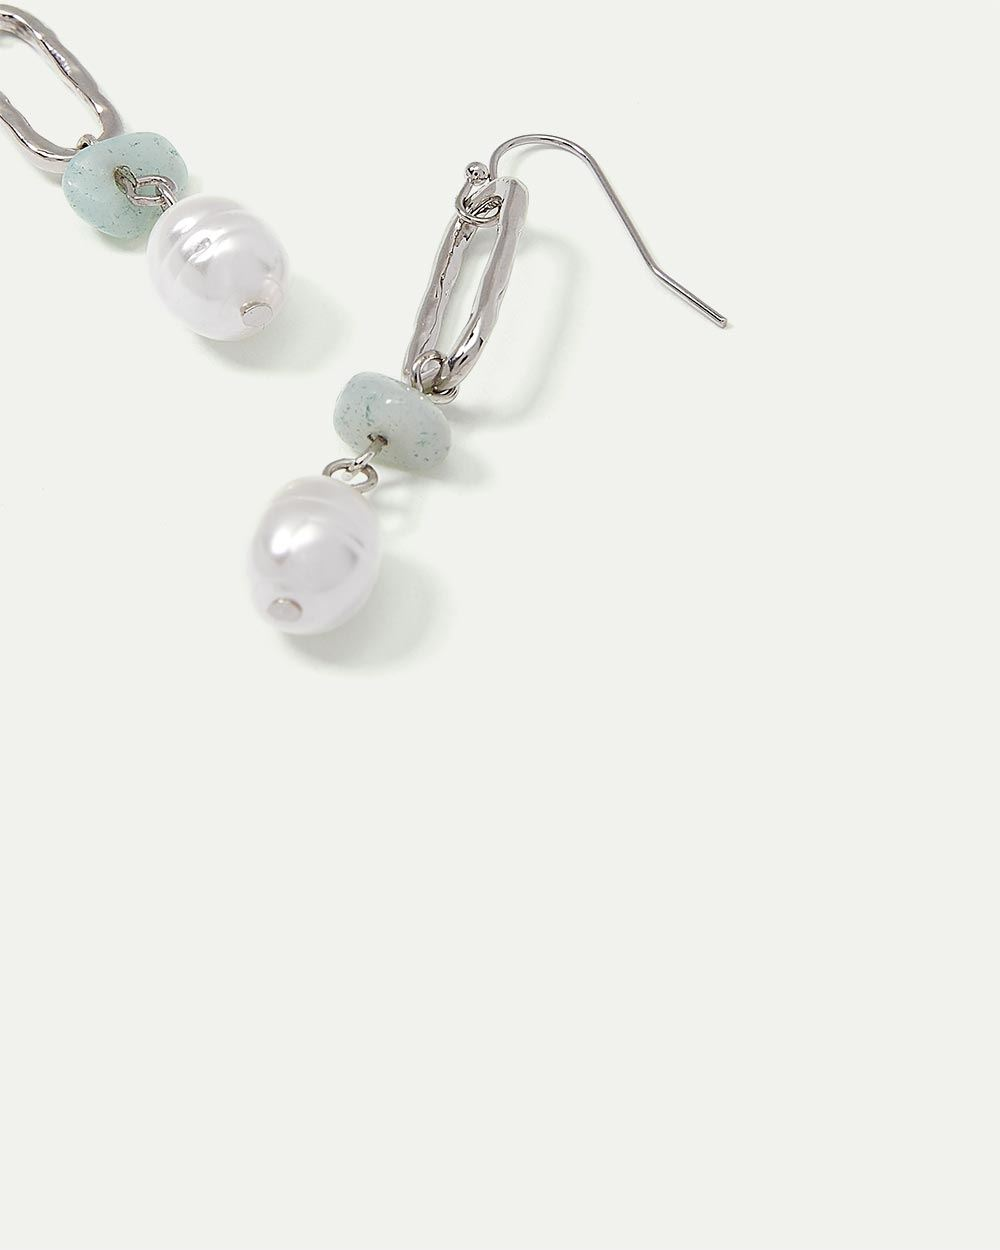 Pendant Earrings with Pearl Drop